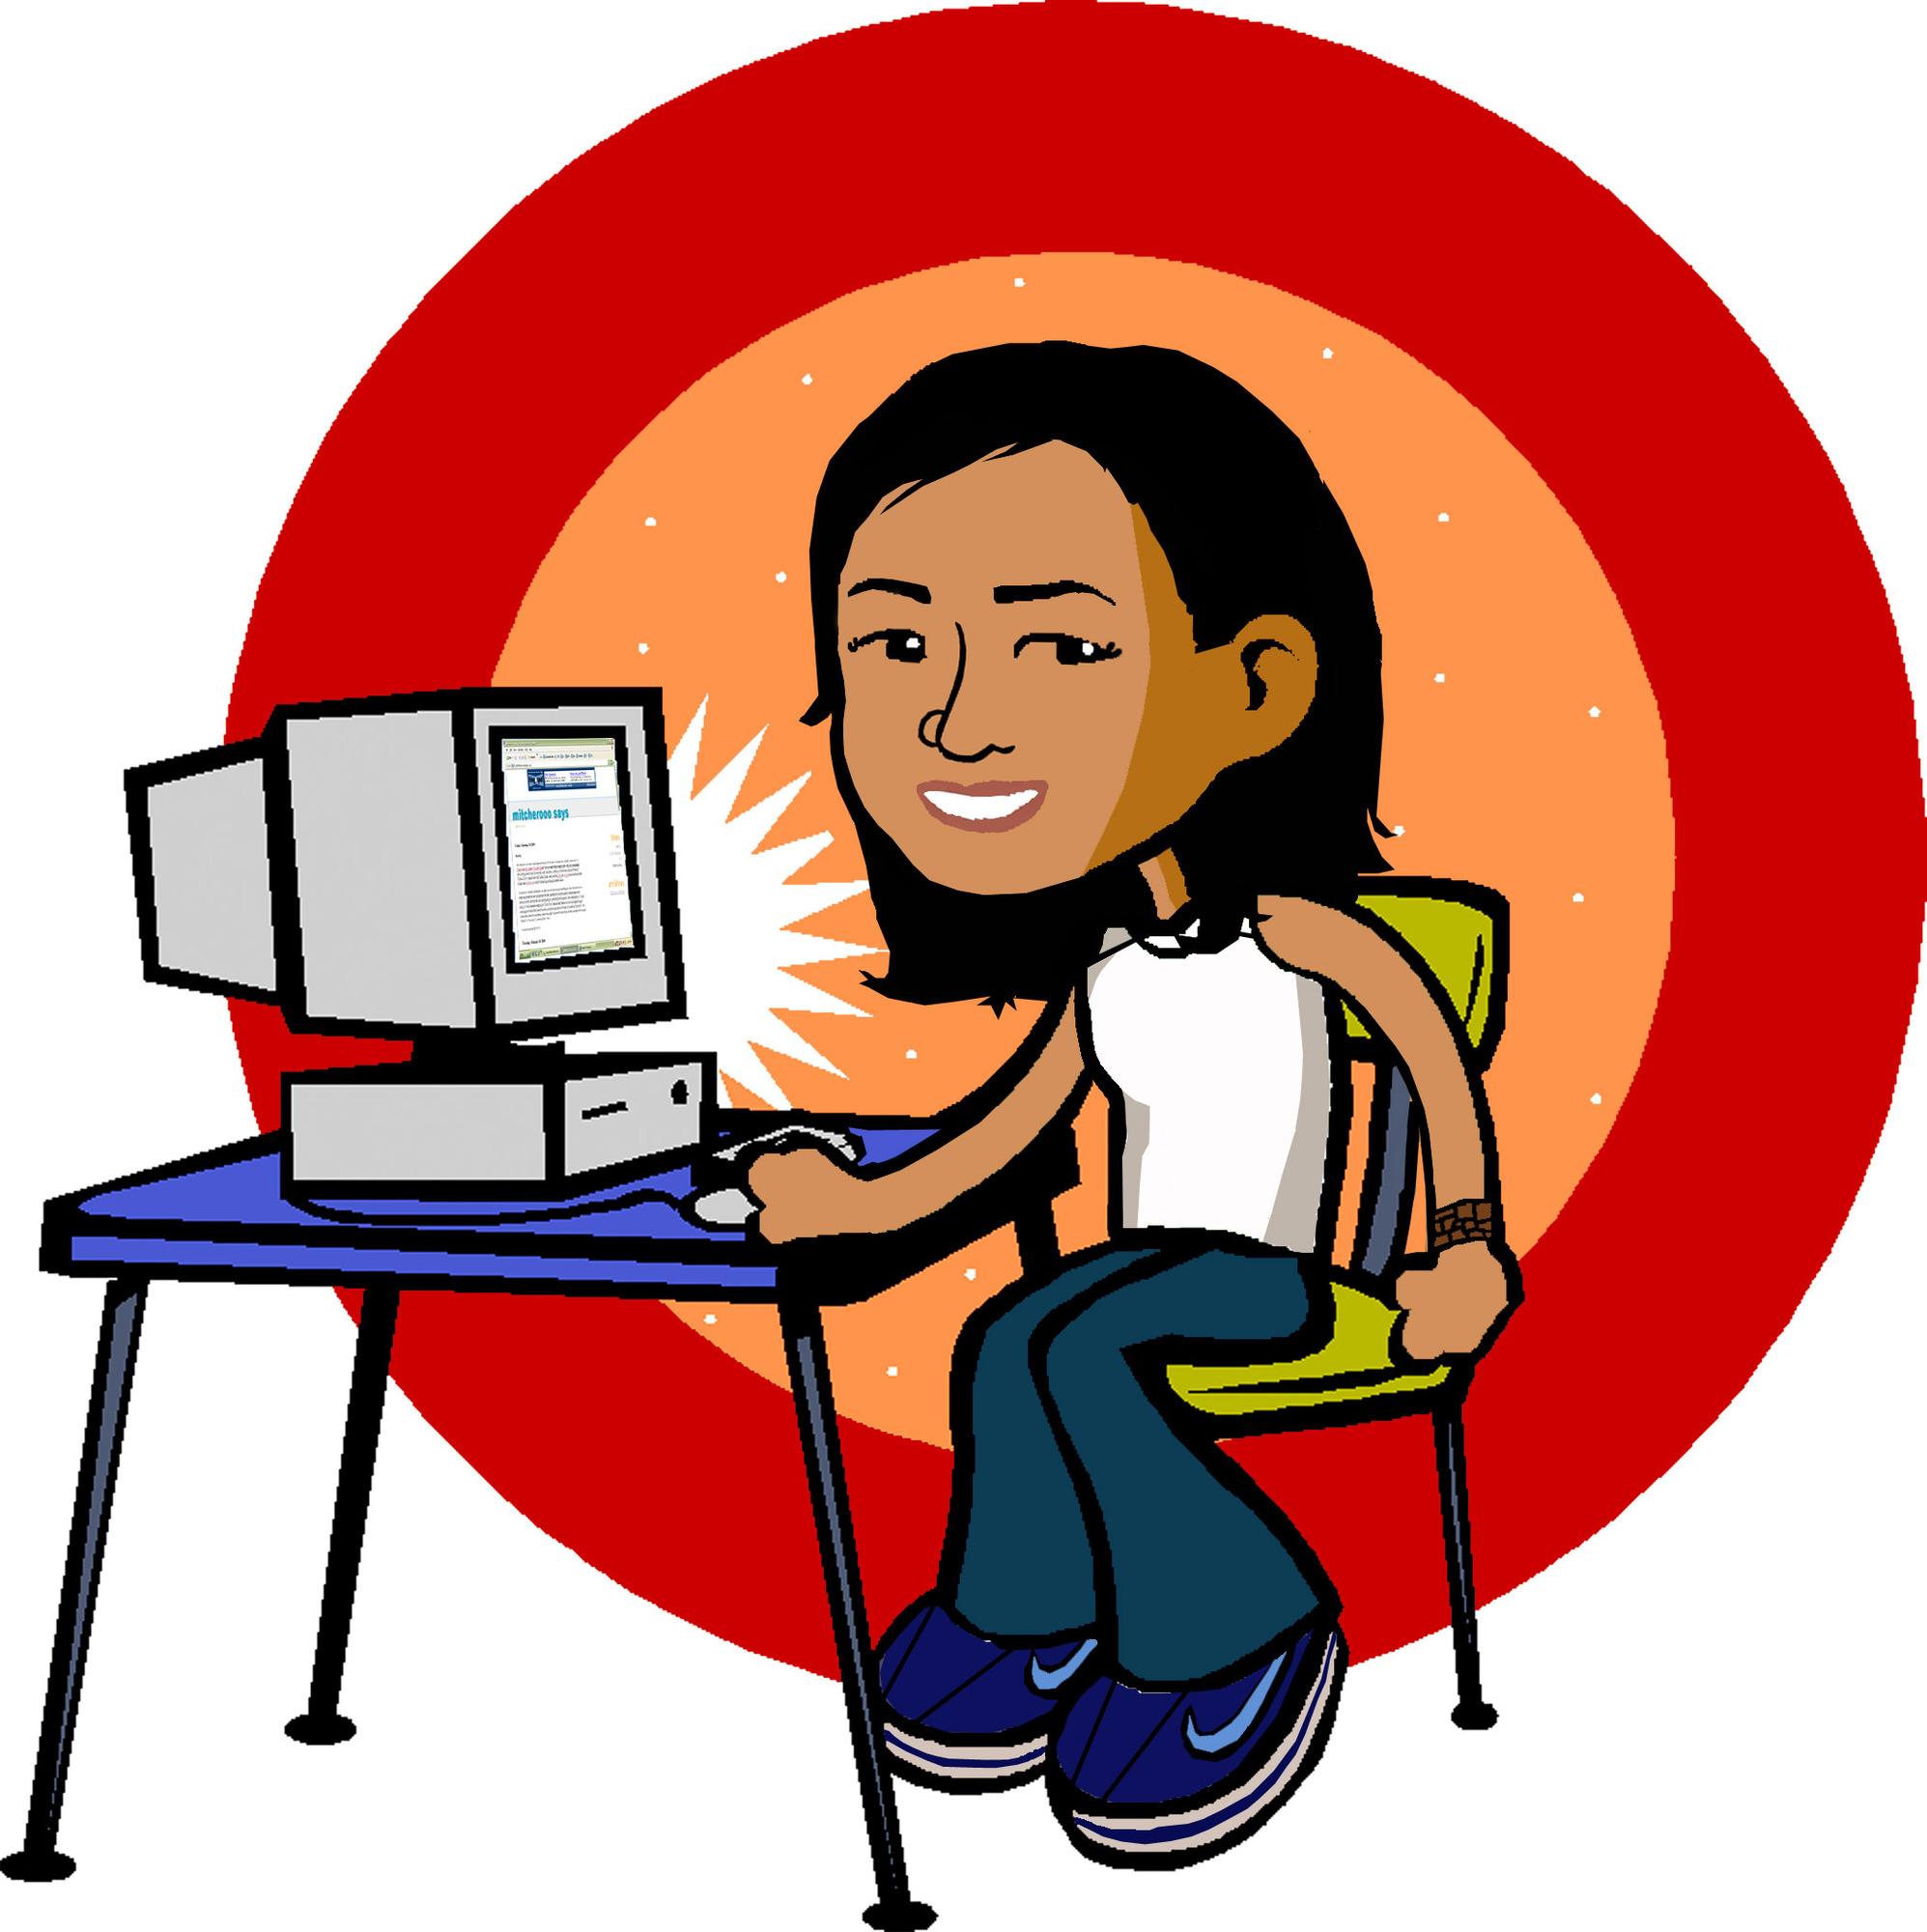 Library Computer Clipart - ClipArt Best